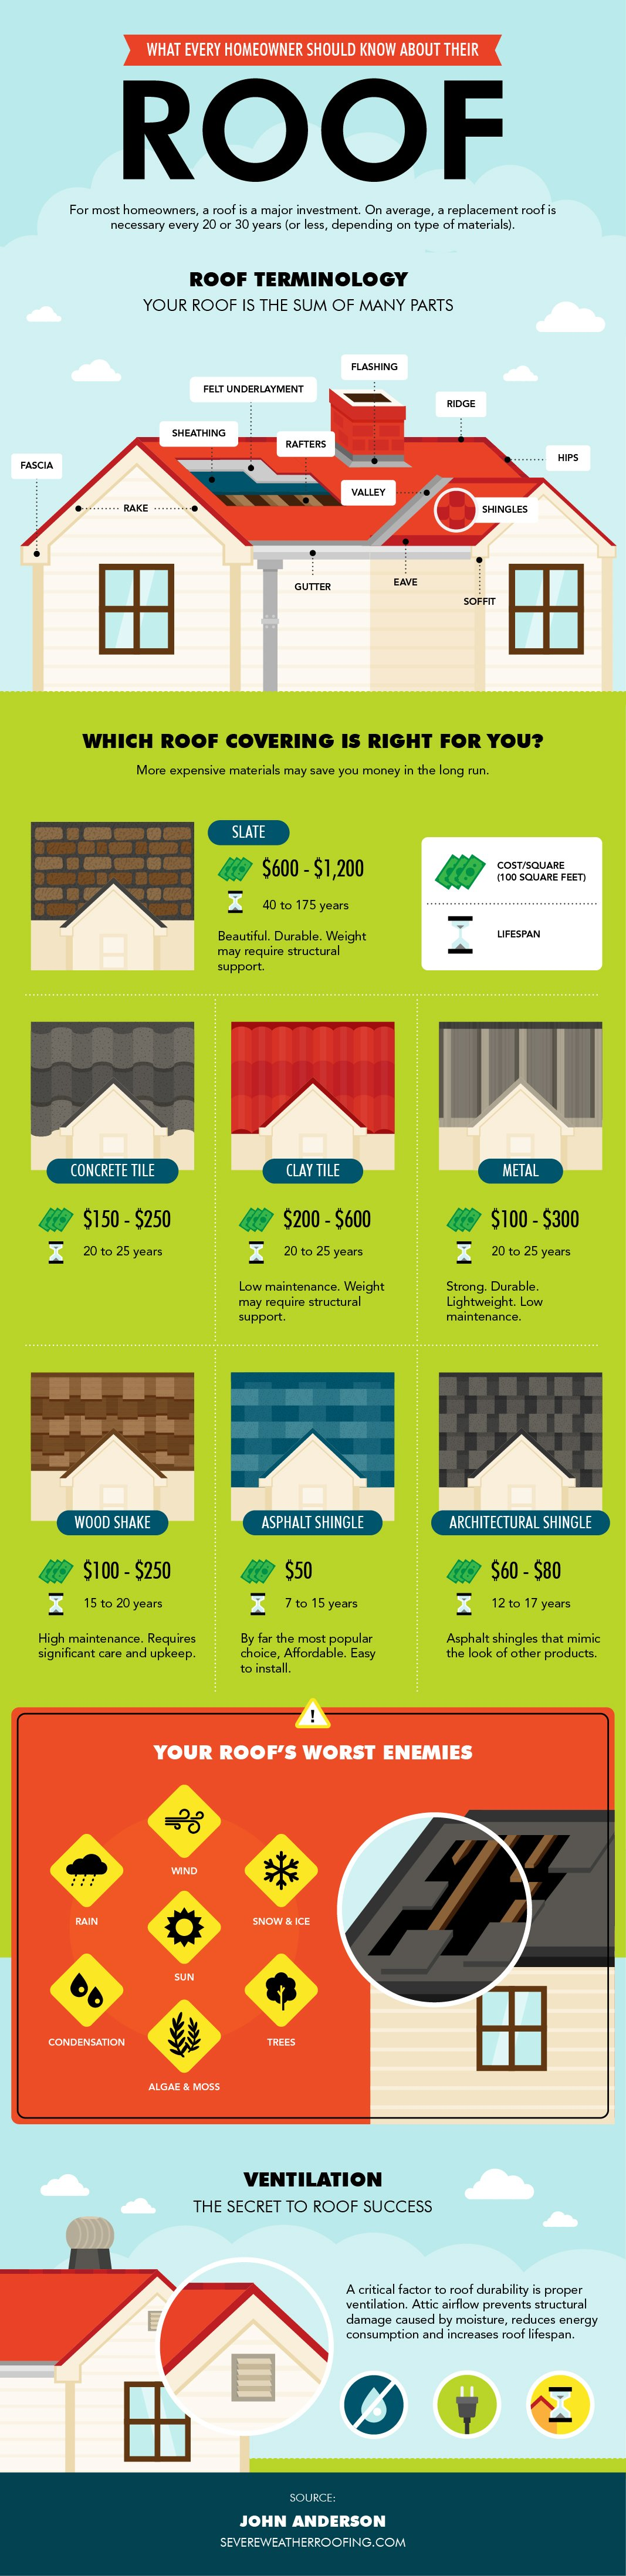 Roof Replacement Options -Roofing Materials - Return On Investment - Infographic